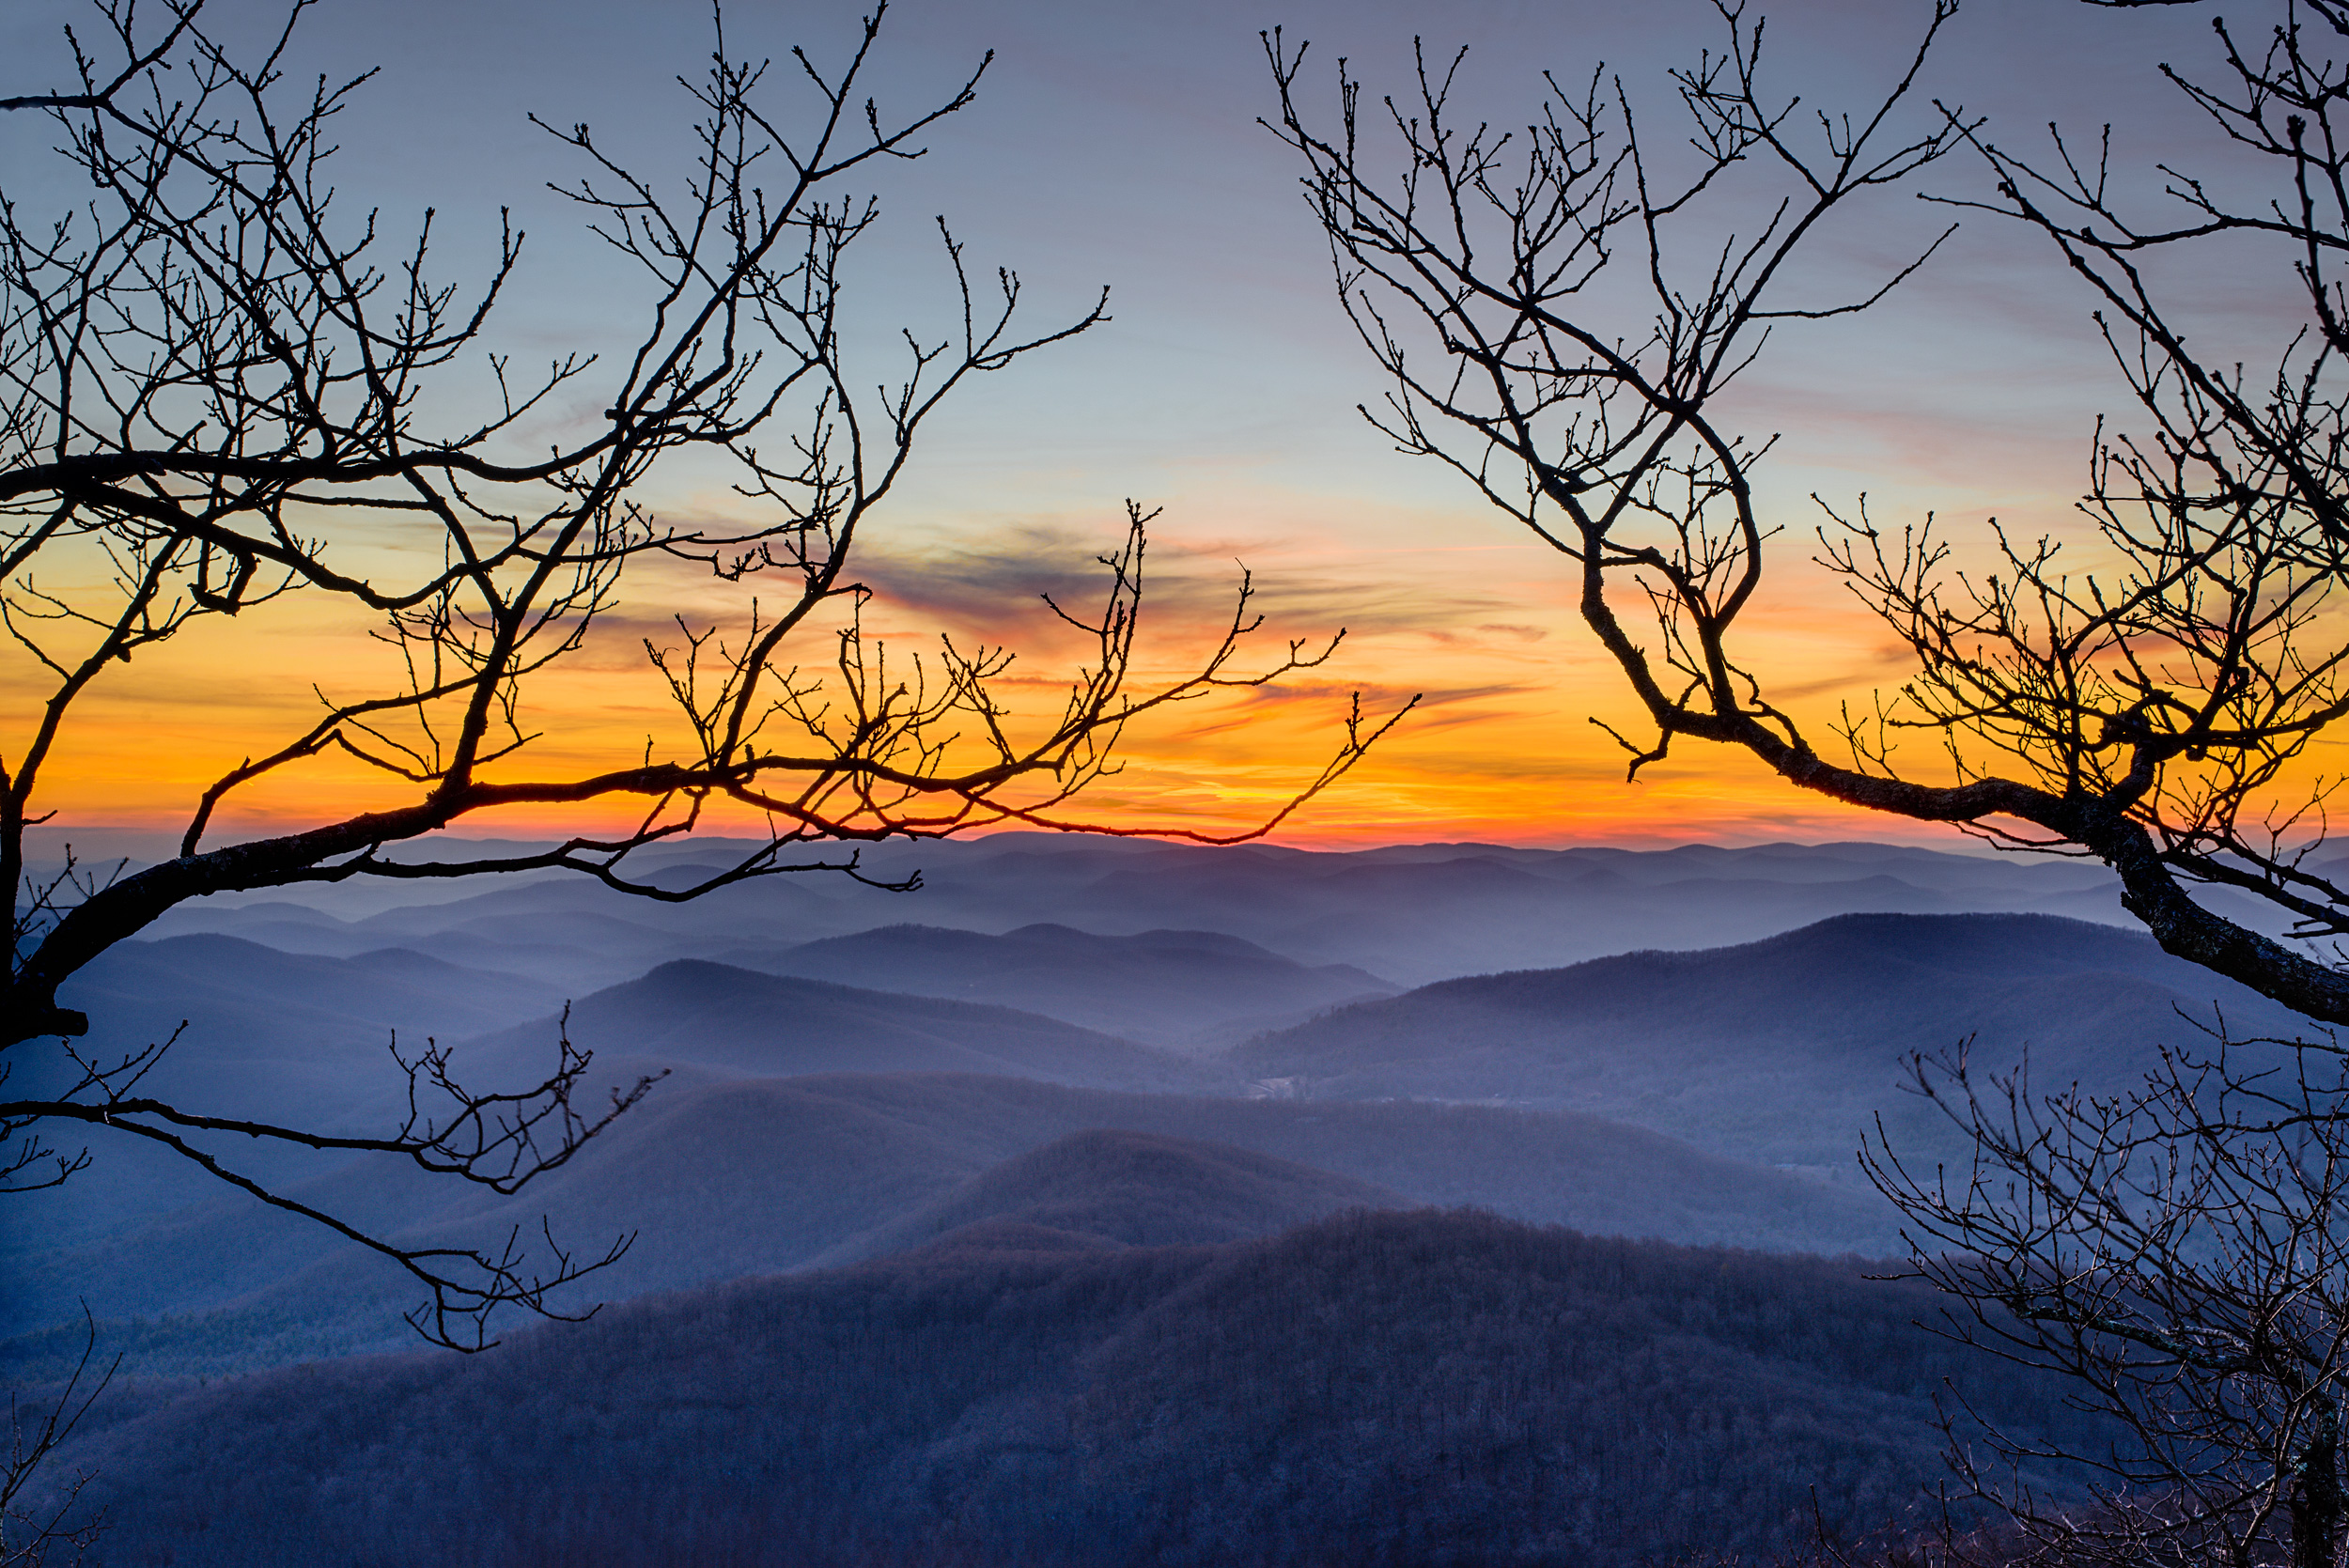 Sunset at the summit view, Blood Mountain GA.